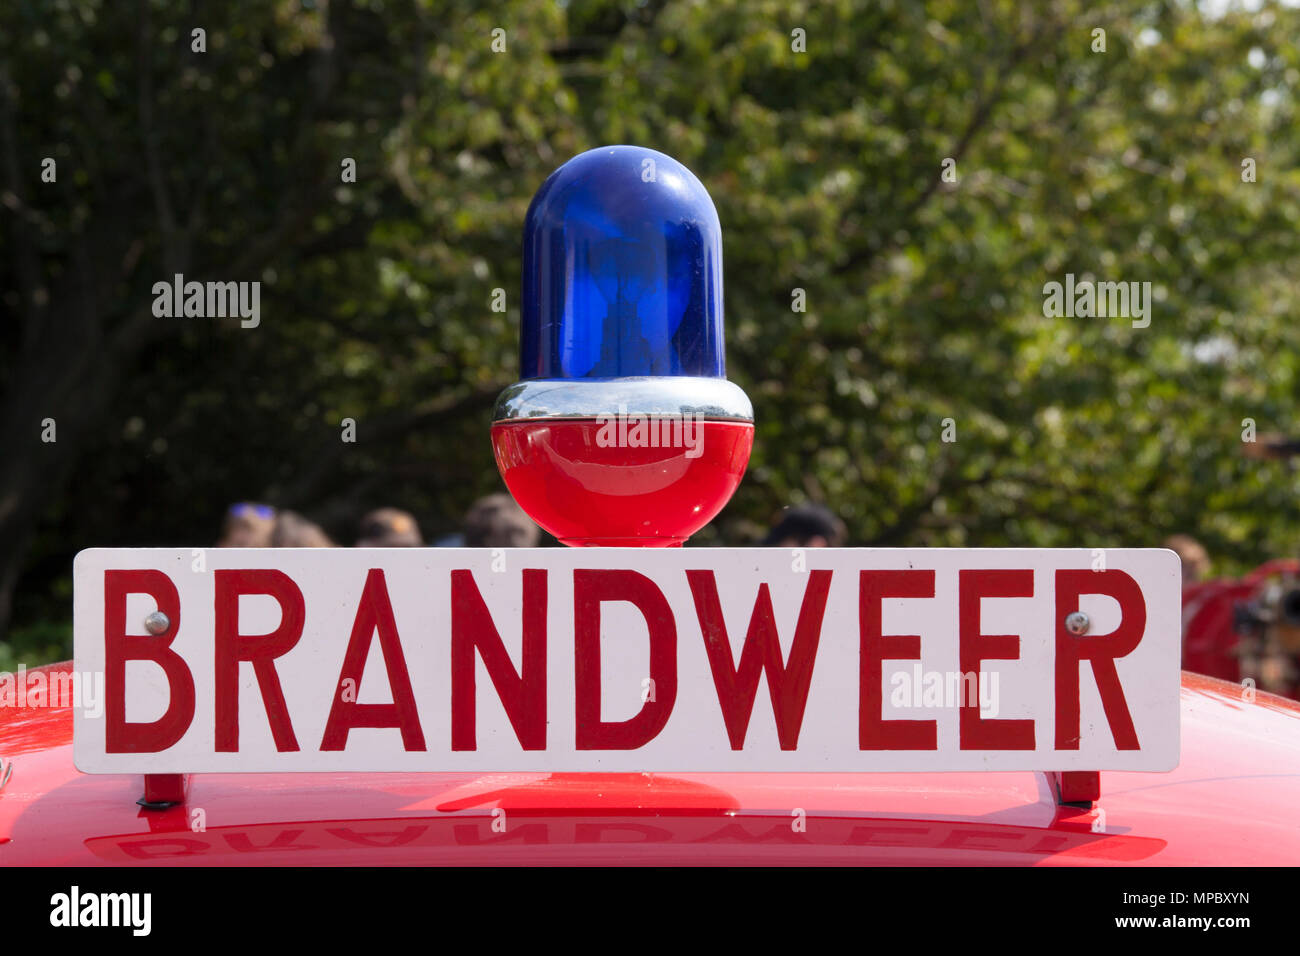 Amsterdam , Netherlands-august 20, 2015: Blue lano and sign with brandweer on dutch firebrigade car - Stock Image